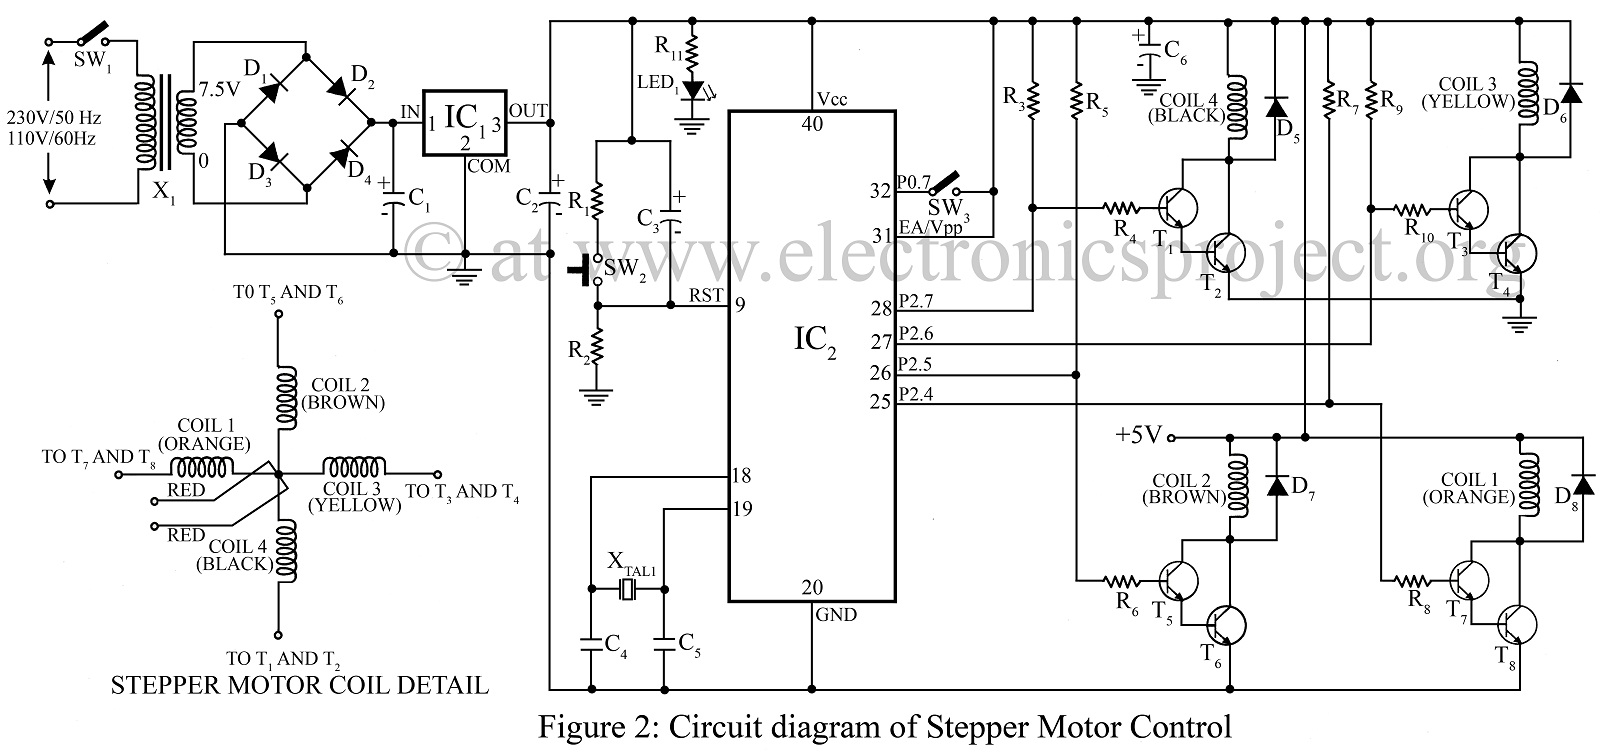 stepper motor control using microcontroller at89c51 circuit under repository-circuits